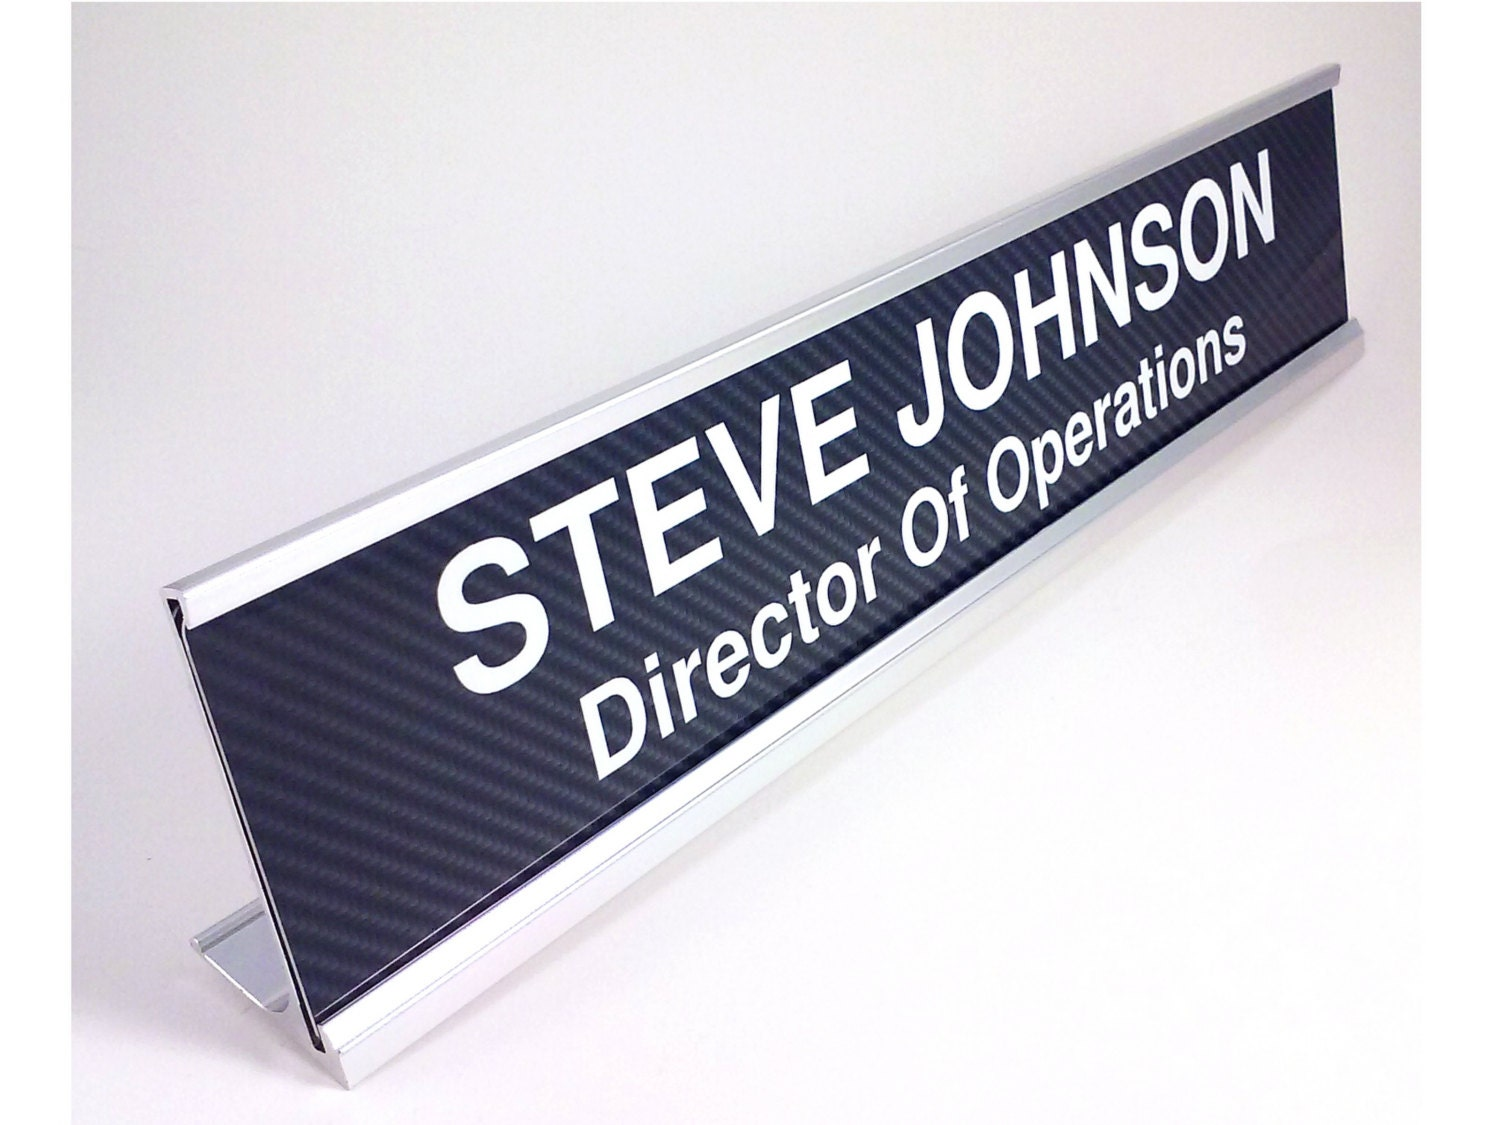 Name Plate: Personalized Desk Name Plate With Carbon Fiber Look Insert